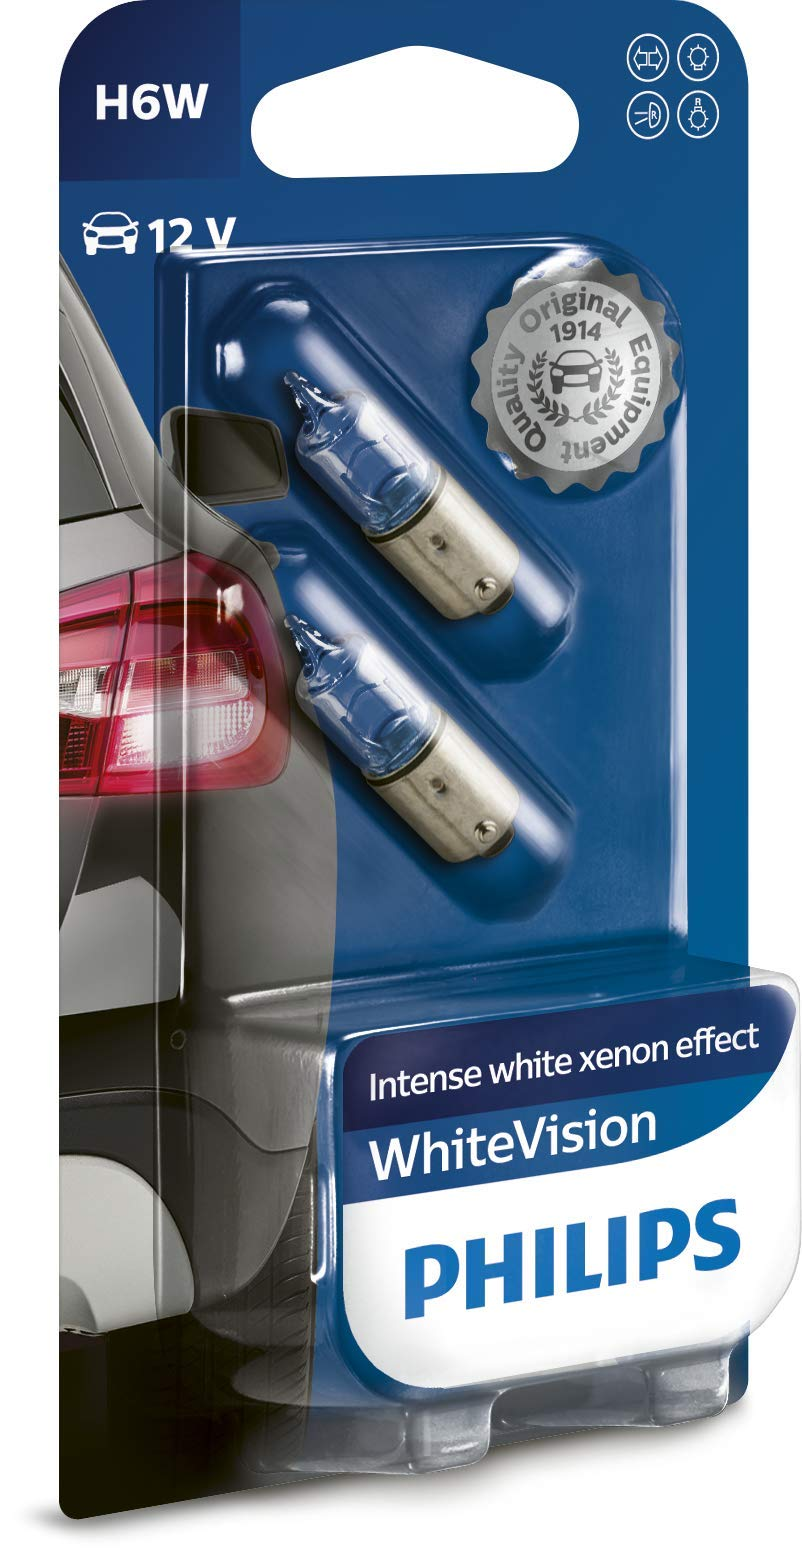 Philips WhiteVision Xenon-Effekt H6W Autolampe 12036WHVB2, Doppelblister von Philips automotive lighting